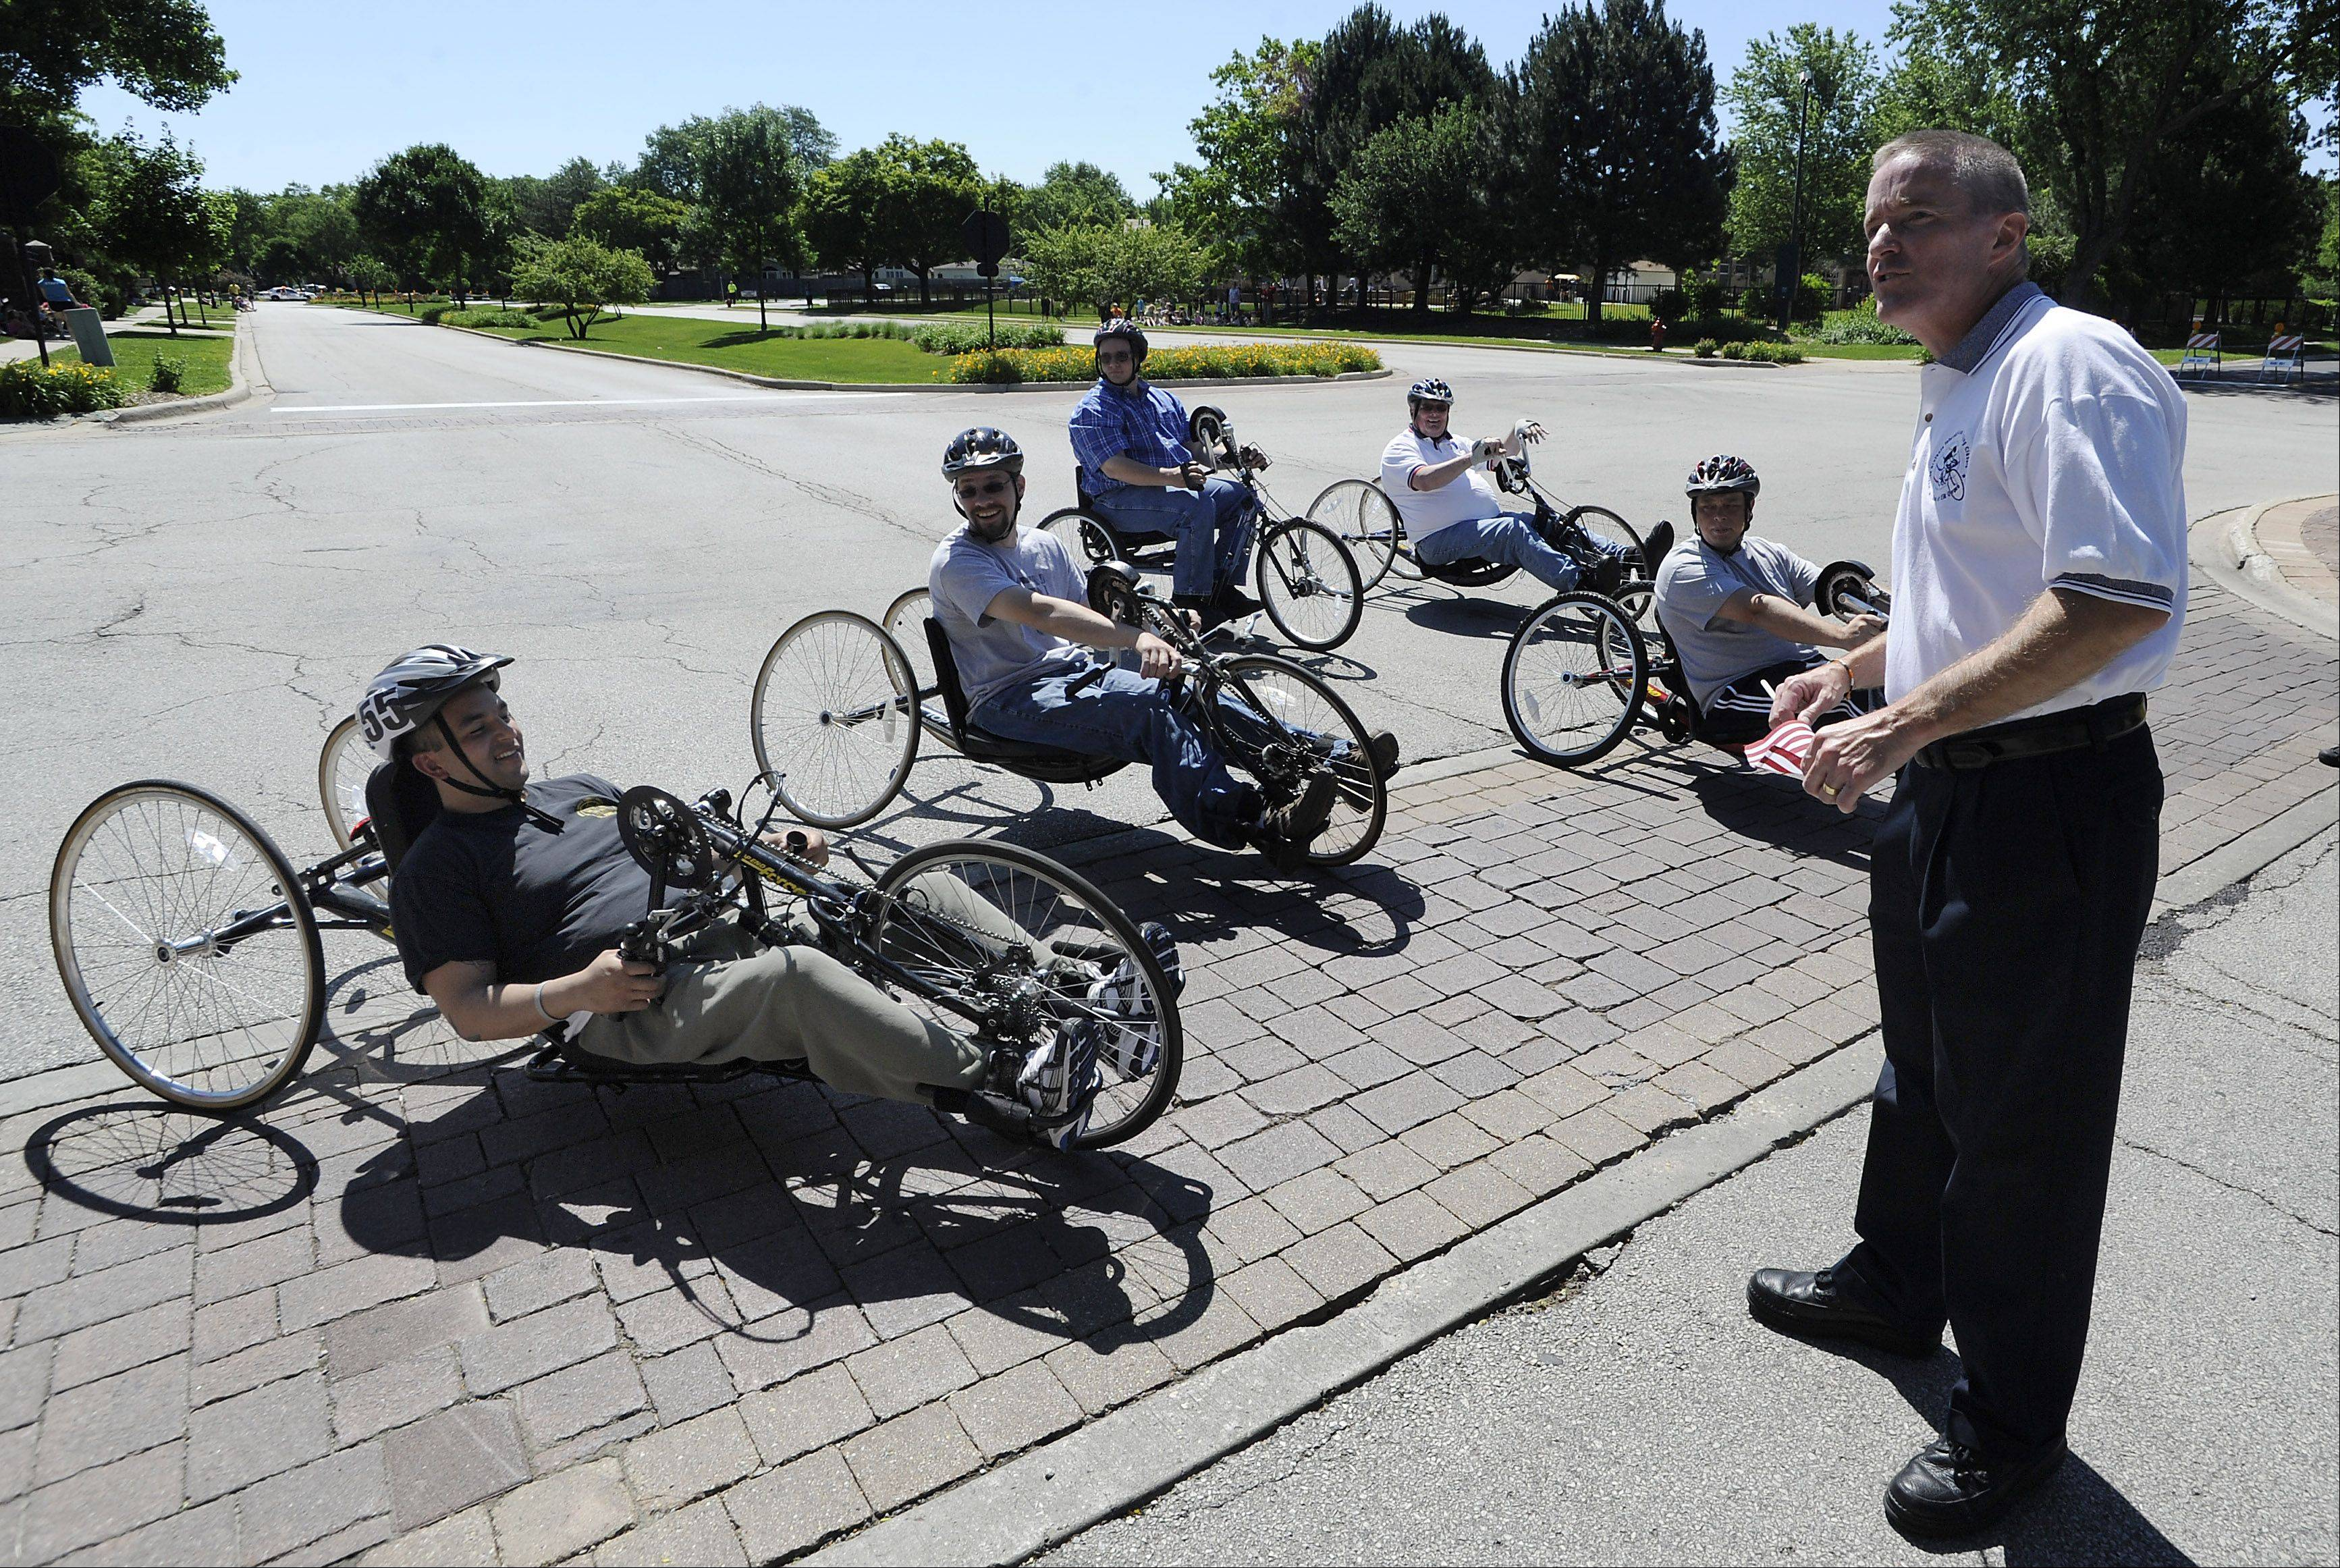 Elk Grove Village Mayor Craig Johnson gets ready to start a mini-race Tuesday to promote disabled athletes who will participate in an adaptive handcycle race as part of the upcoming Tour of Elk Grove.